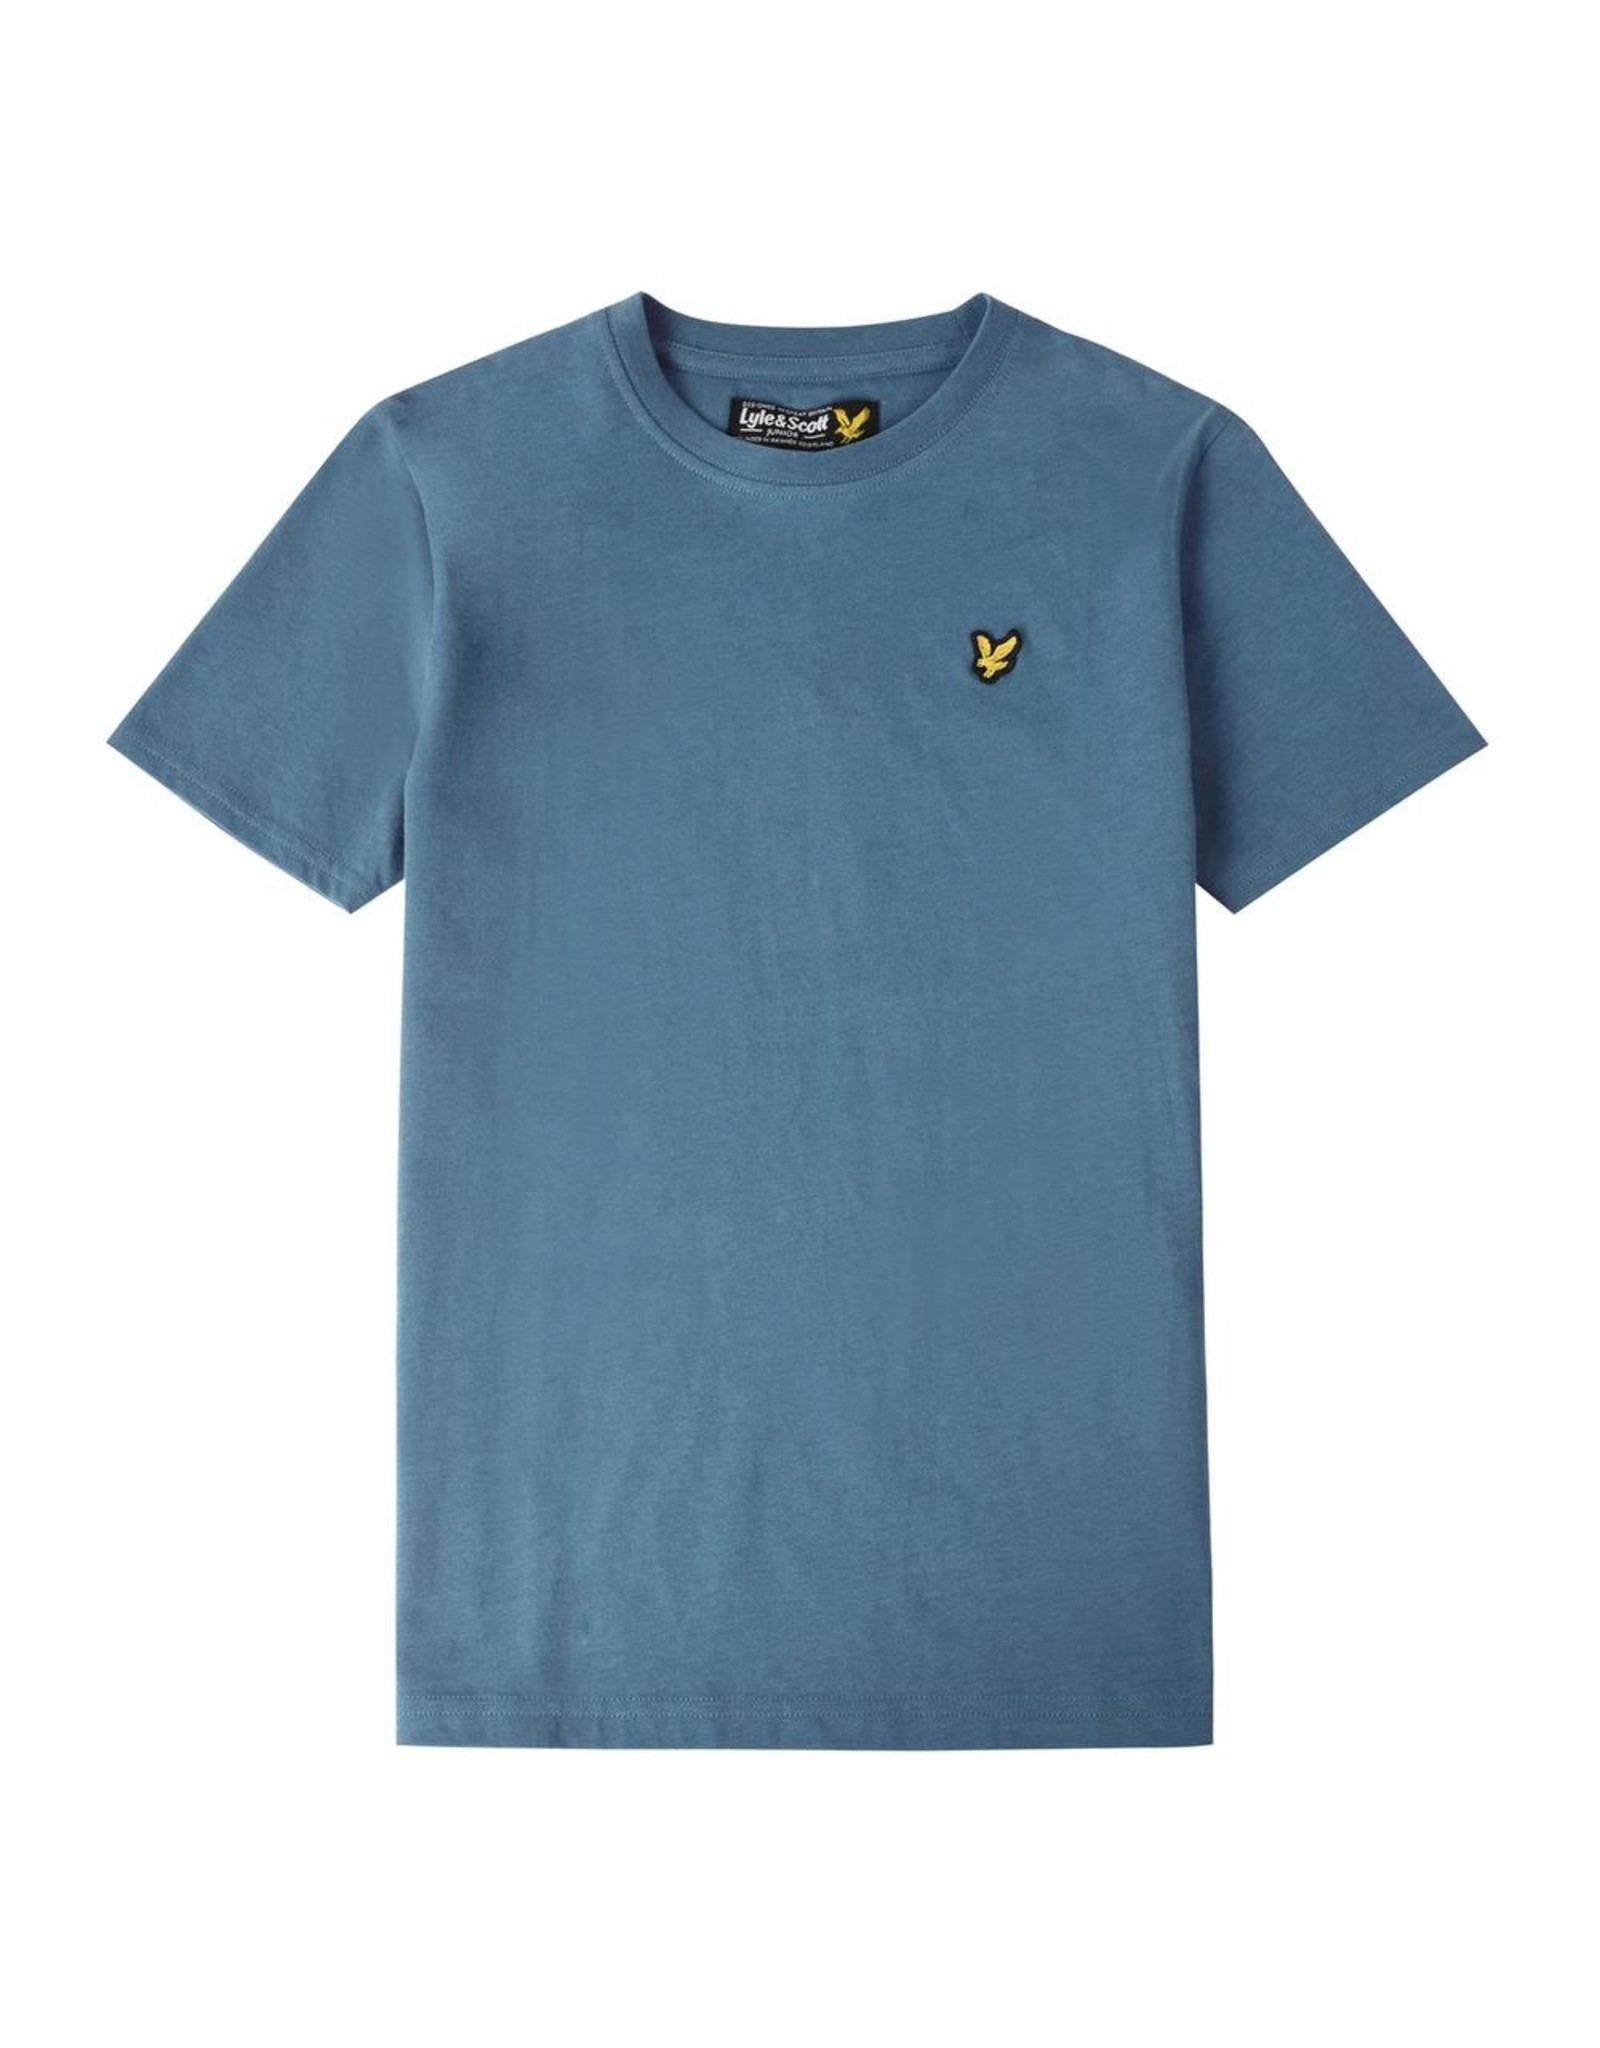 Lyle & Scott Boys Classic T-Shirt Bluestone